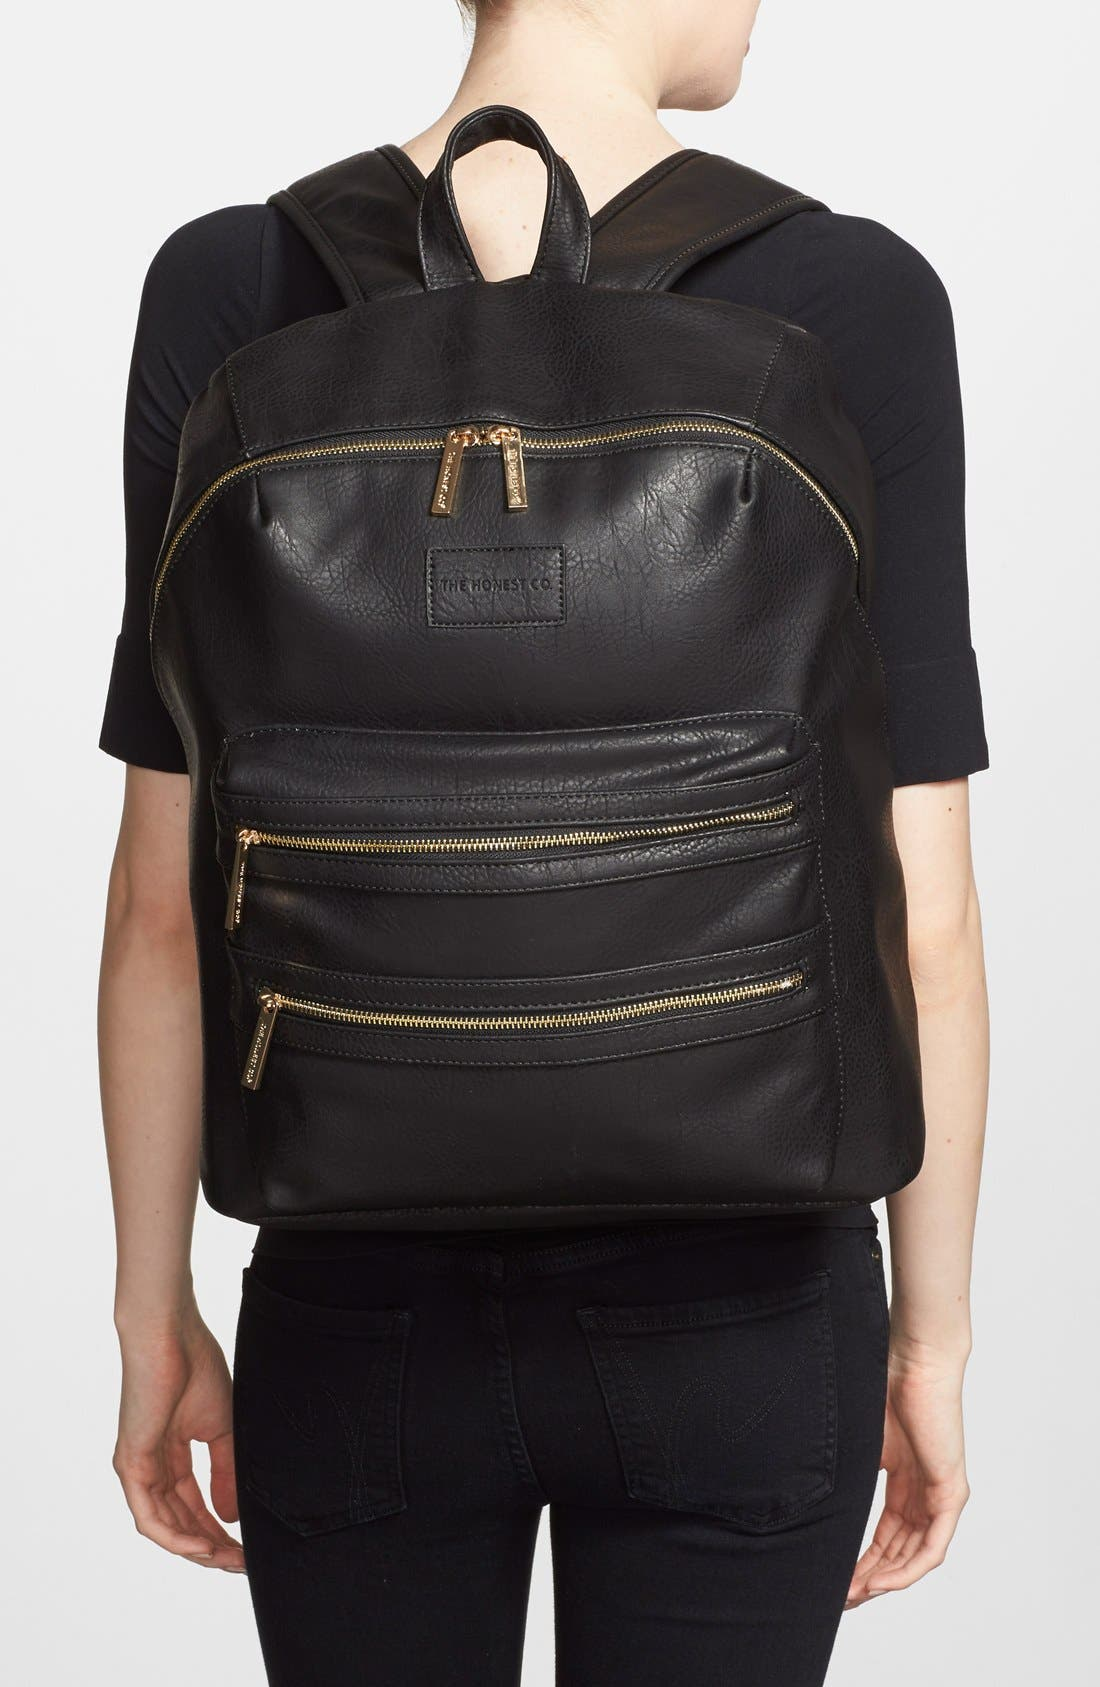 THE HONEST COMPANY, 'City' Faux Leather Diaper Backpack, Alternate thumbnail 3, color, BLACK